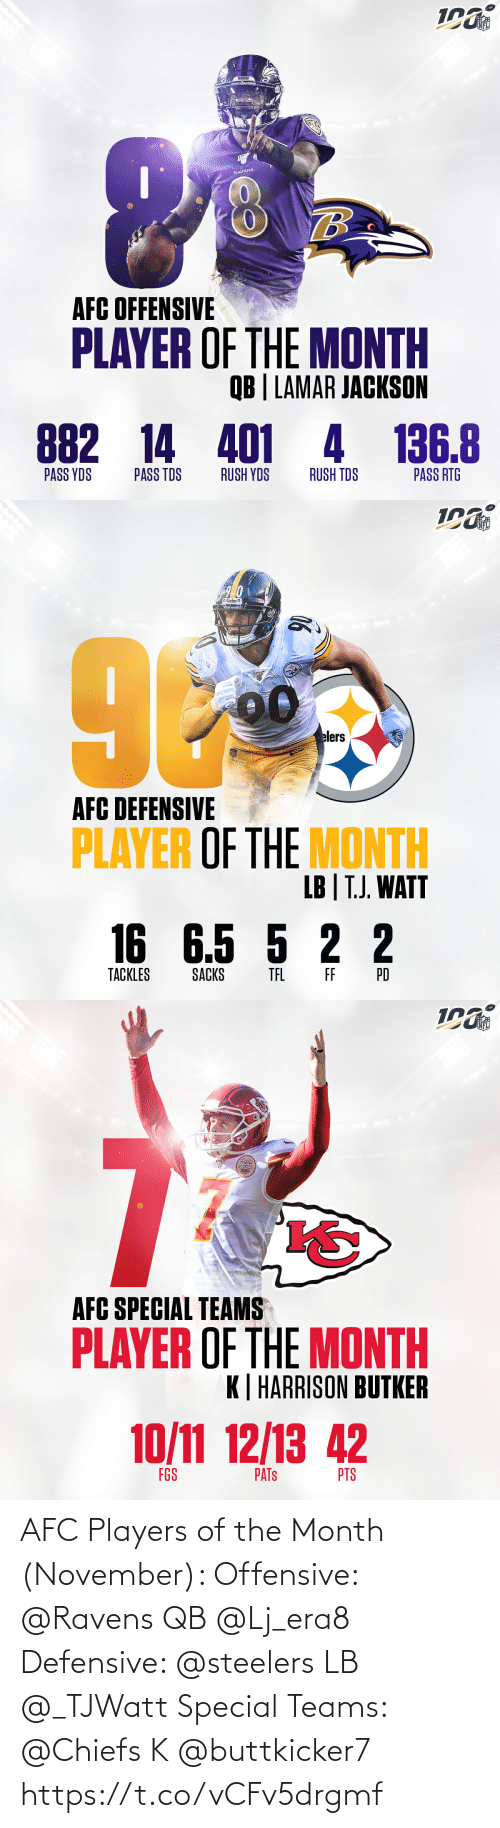 Memes, Nfl, and Chiefs: NFL  RAVENS  AFC OFFENSIVE  PLAYER OF THE MONTH  QB | LAMAR JACKSON  882 14 401 4 136.8  PASS YDS  PASS TDS  RUSH YDS  RUSH TDS  PASS RTG   NFL  elers  AFC DEFENSIVE  PLAYER OF THE MONTH  LB | T.J. WATT  16 6.5 5 2 2  TACKLES  SACKS  TEL  FF  PD   NFL  AFC SPECIAL TEAMS  PLAYER OF THE MONTH  K| HARRISON BUTKER  10/11 12/13 42  FGS  PTS  PATS AFC Players of the Month (November):   Offensive: @Ravens QB @Lj_era8  Defensive: @steelers LB @_TJWatt  Special Teams: @Chiefs K @buttkicker7 https://t.co/vCFv5drgmf